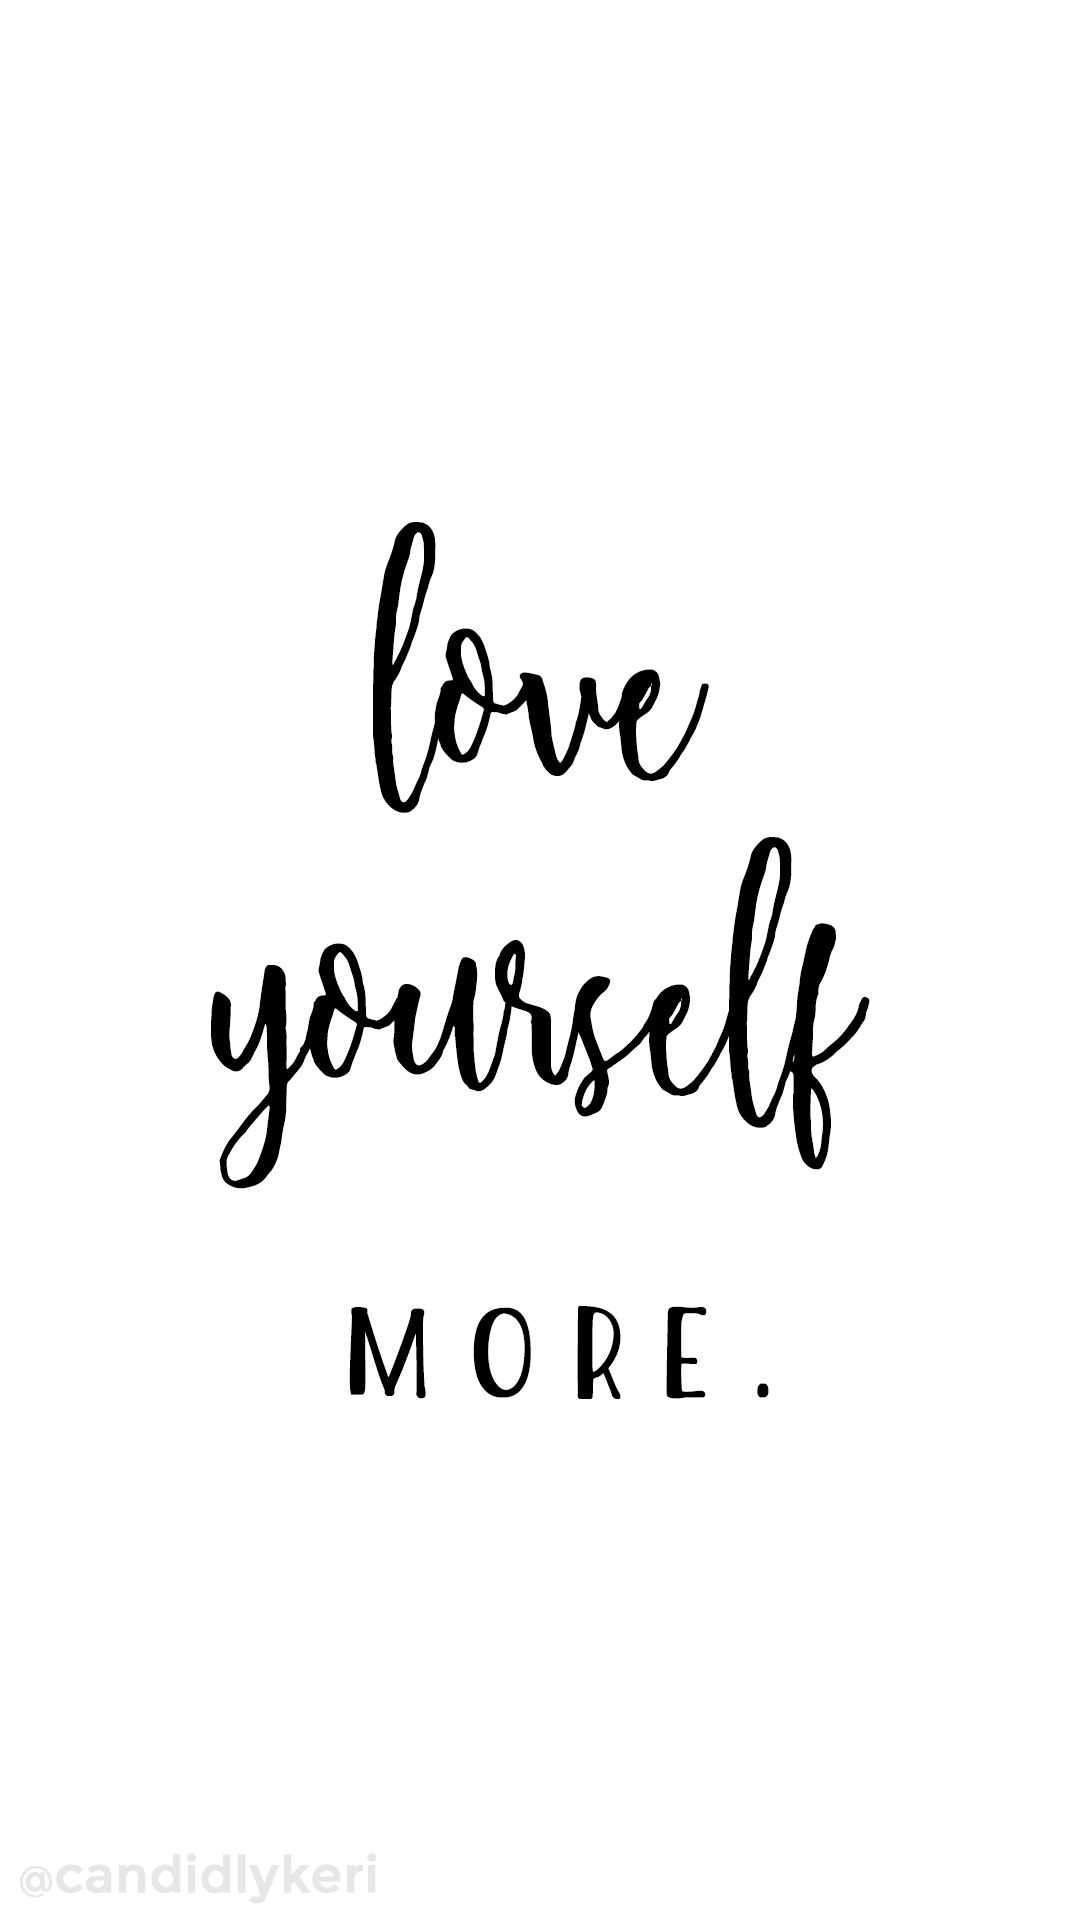 Beautiful Love Yourself More Quote Inspirational Self Love Wallpaper You Can Download  For Free On The Blog! For Any Device; Mobile, Desktop, Iphone, Android!